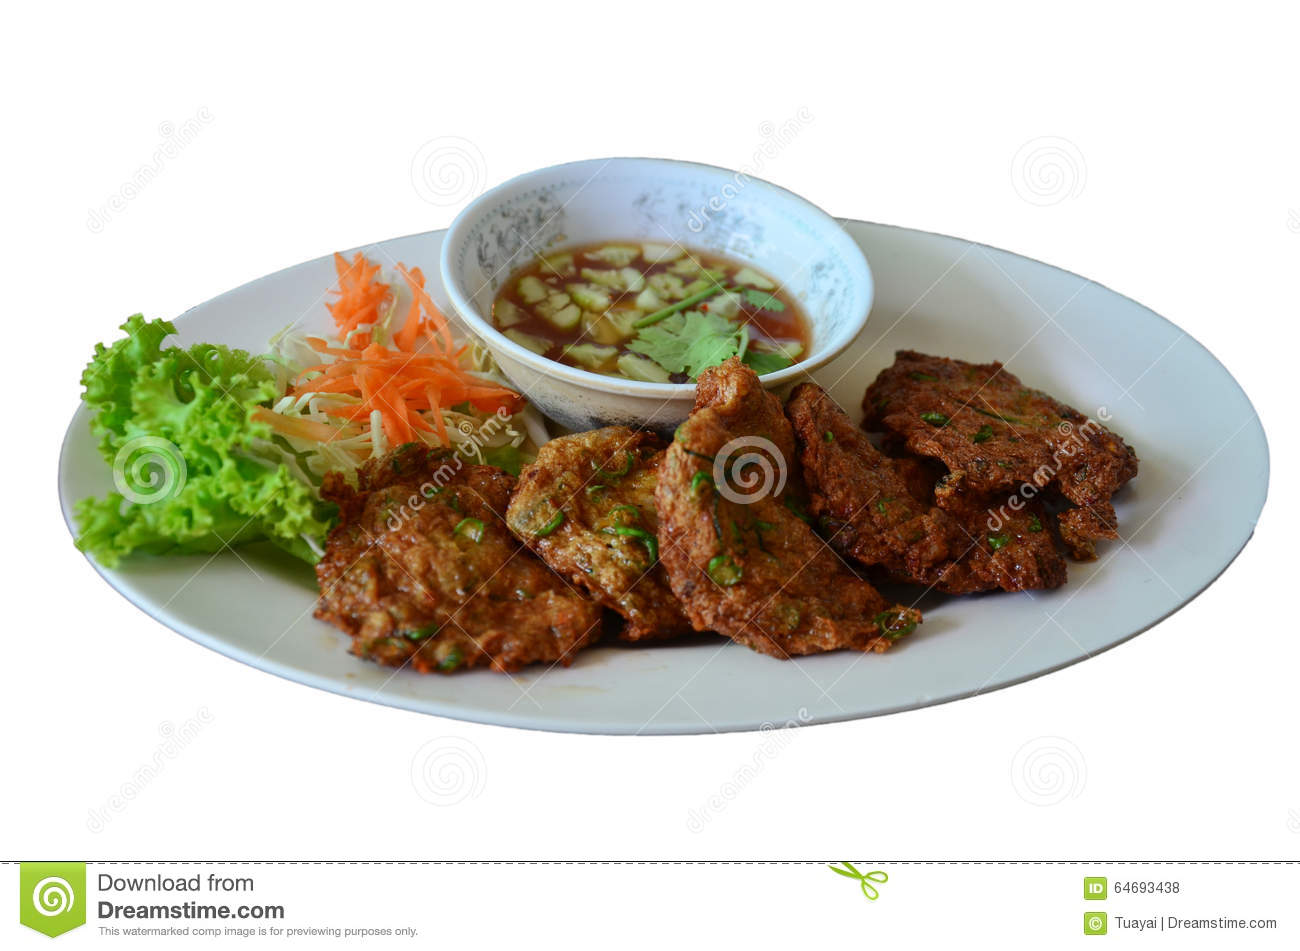 Fried Fish Patty Or Curried Fish Cake Stock Photo - Image: 64693438